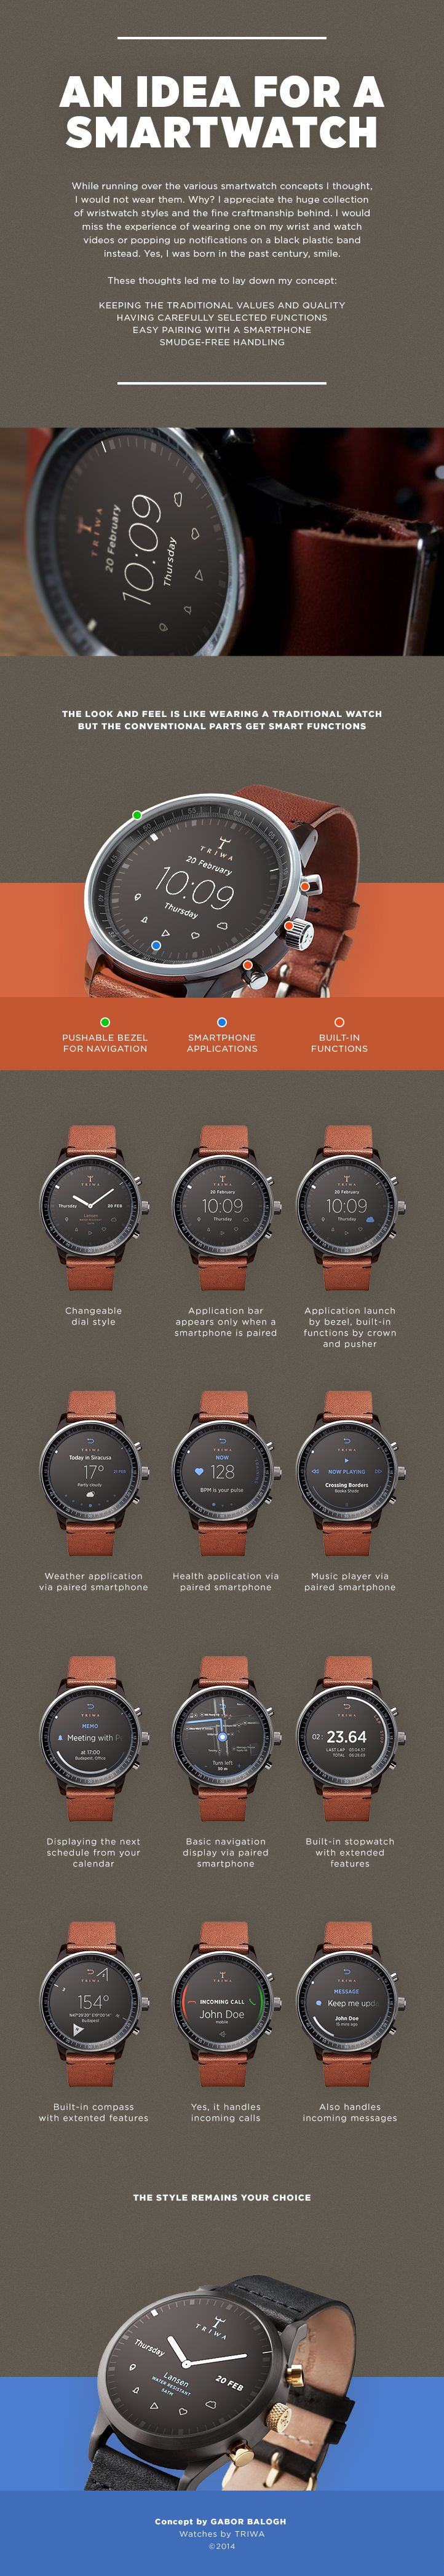 Smartwatch Concept - really nice idea, but would definitely add back an authentic analog touch with the hands on the face of the watch as an option to polish it off visually. Simplified graphics for the hands is doing the watch style injustice.